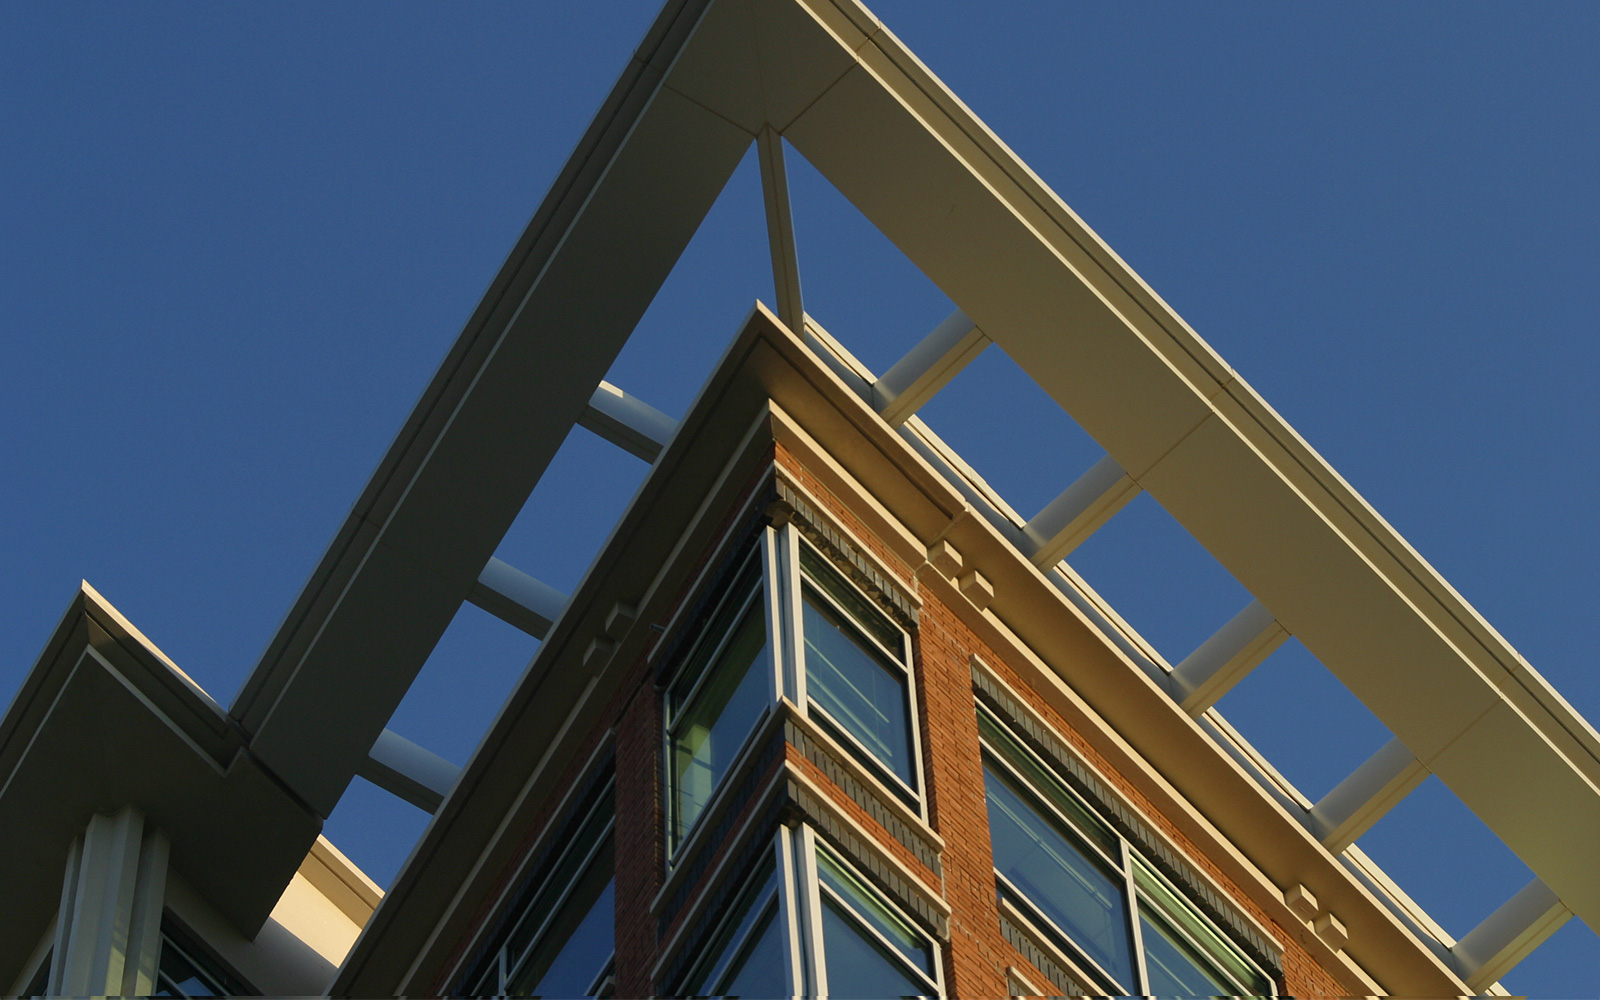 The top corner of a modern building, as seen from below, with blue sky in the background